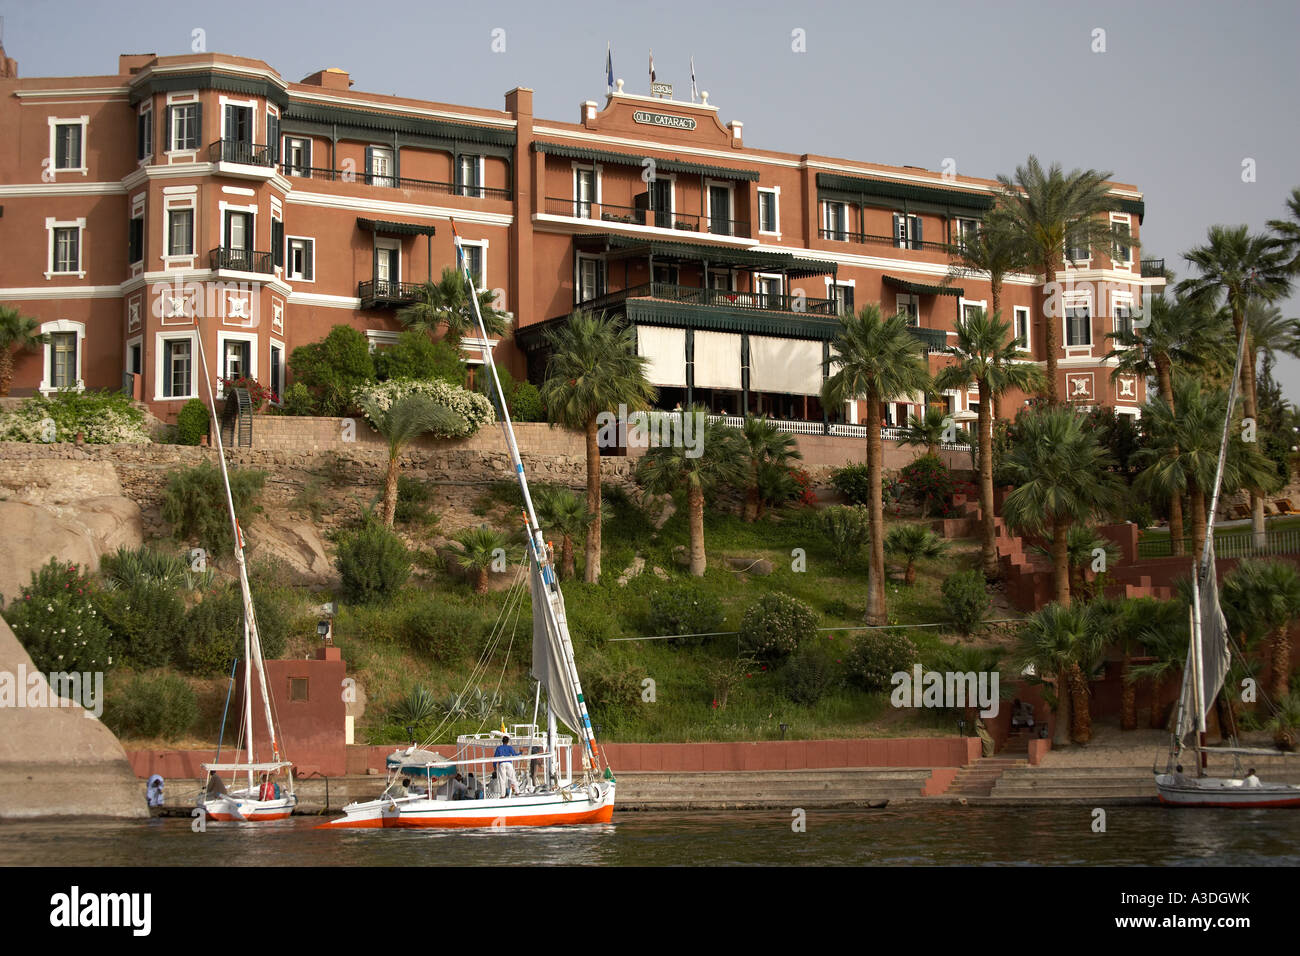 Old Cataract Hotel Aswan Egypt Stock Photo 10752750 Alamy